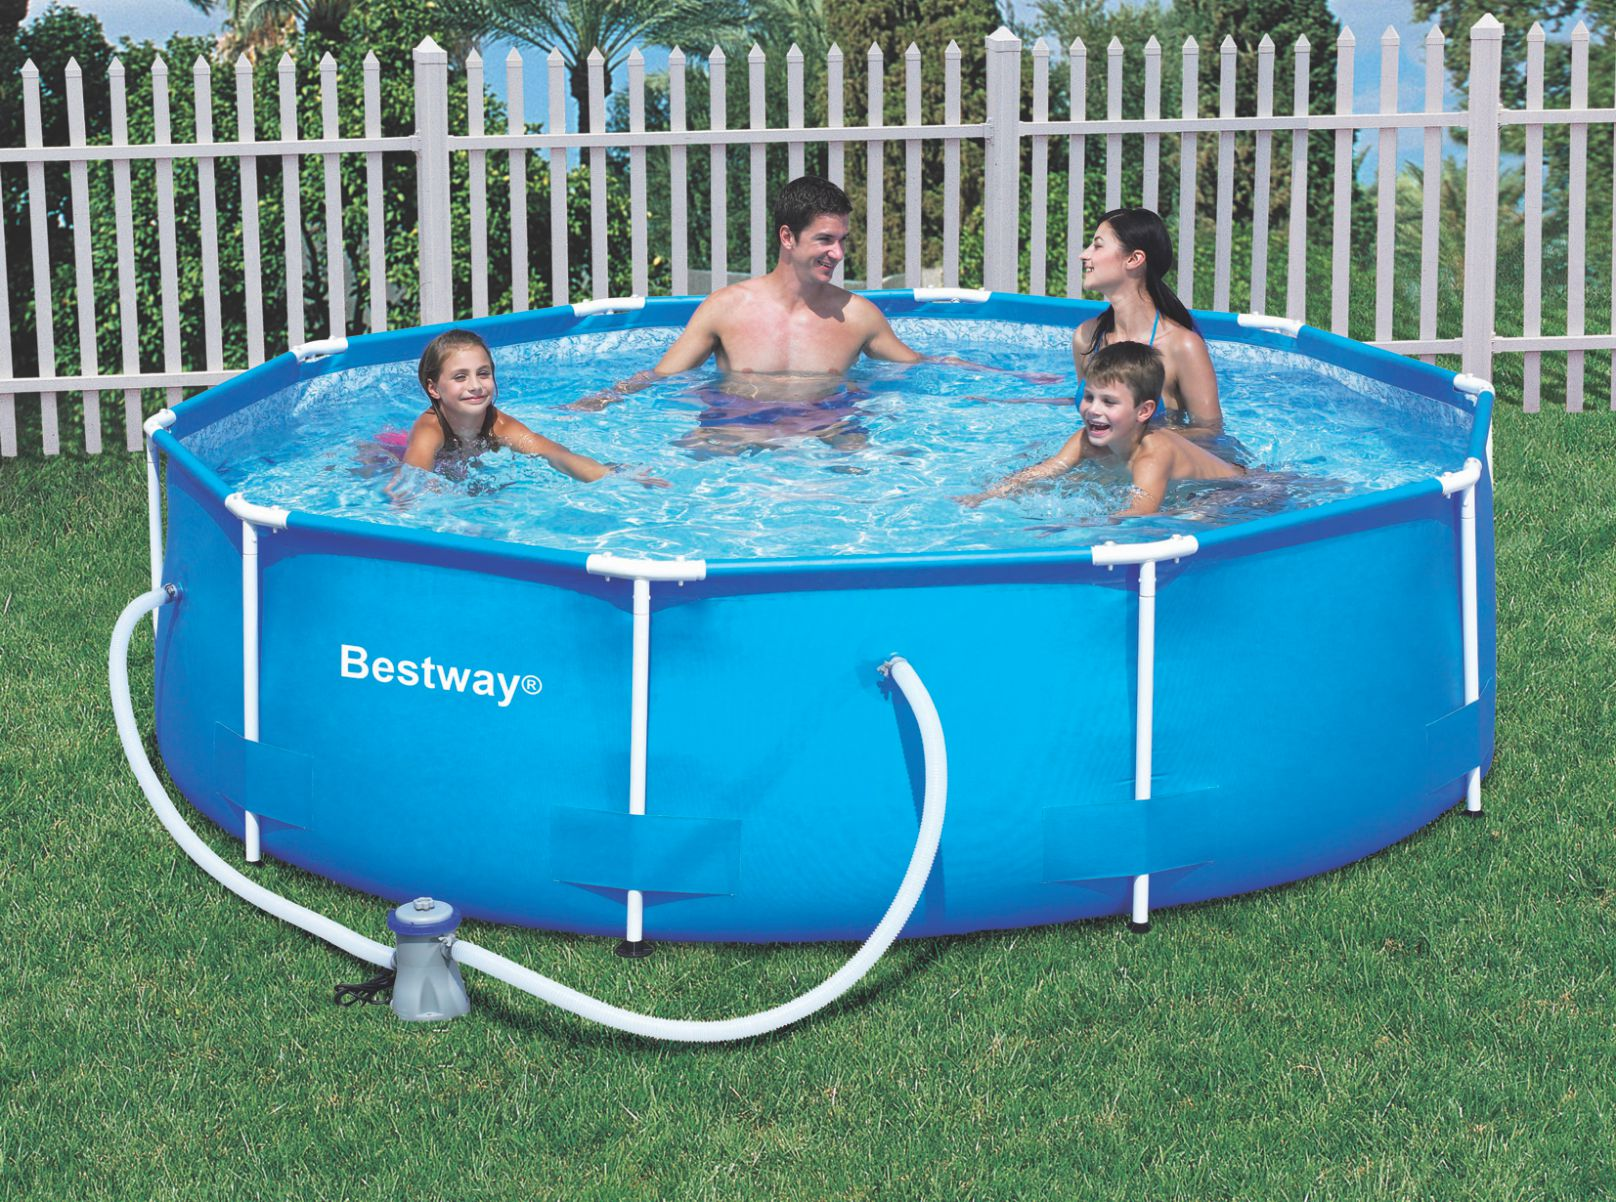 Pools bestway steel pro frame pool set 10 x 30 bestway 30kg for sale in cape town id - Steel frame pool ...